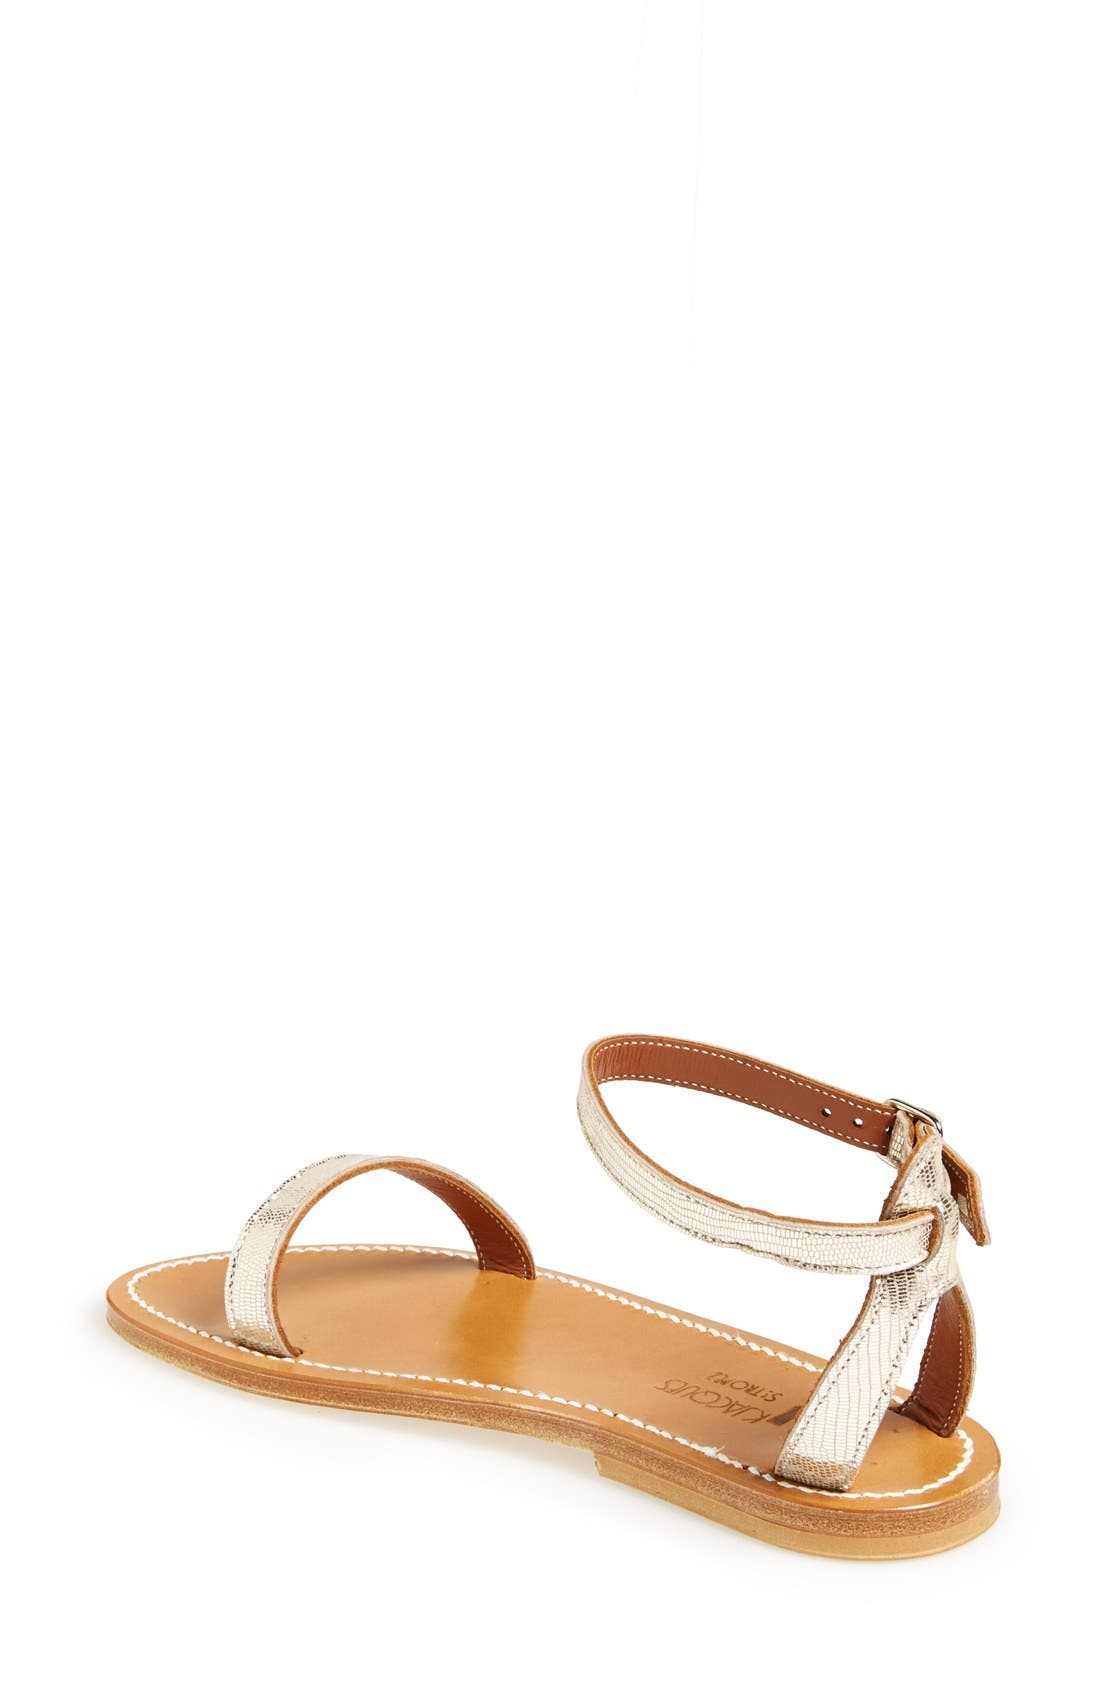 Alternate Image 2  - K.Jacques St. Tropez 'Laura' Ankle Strap Sandal (Women)